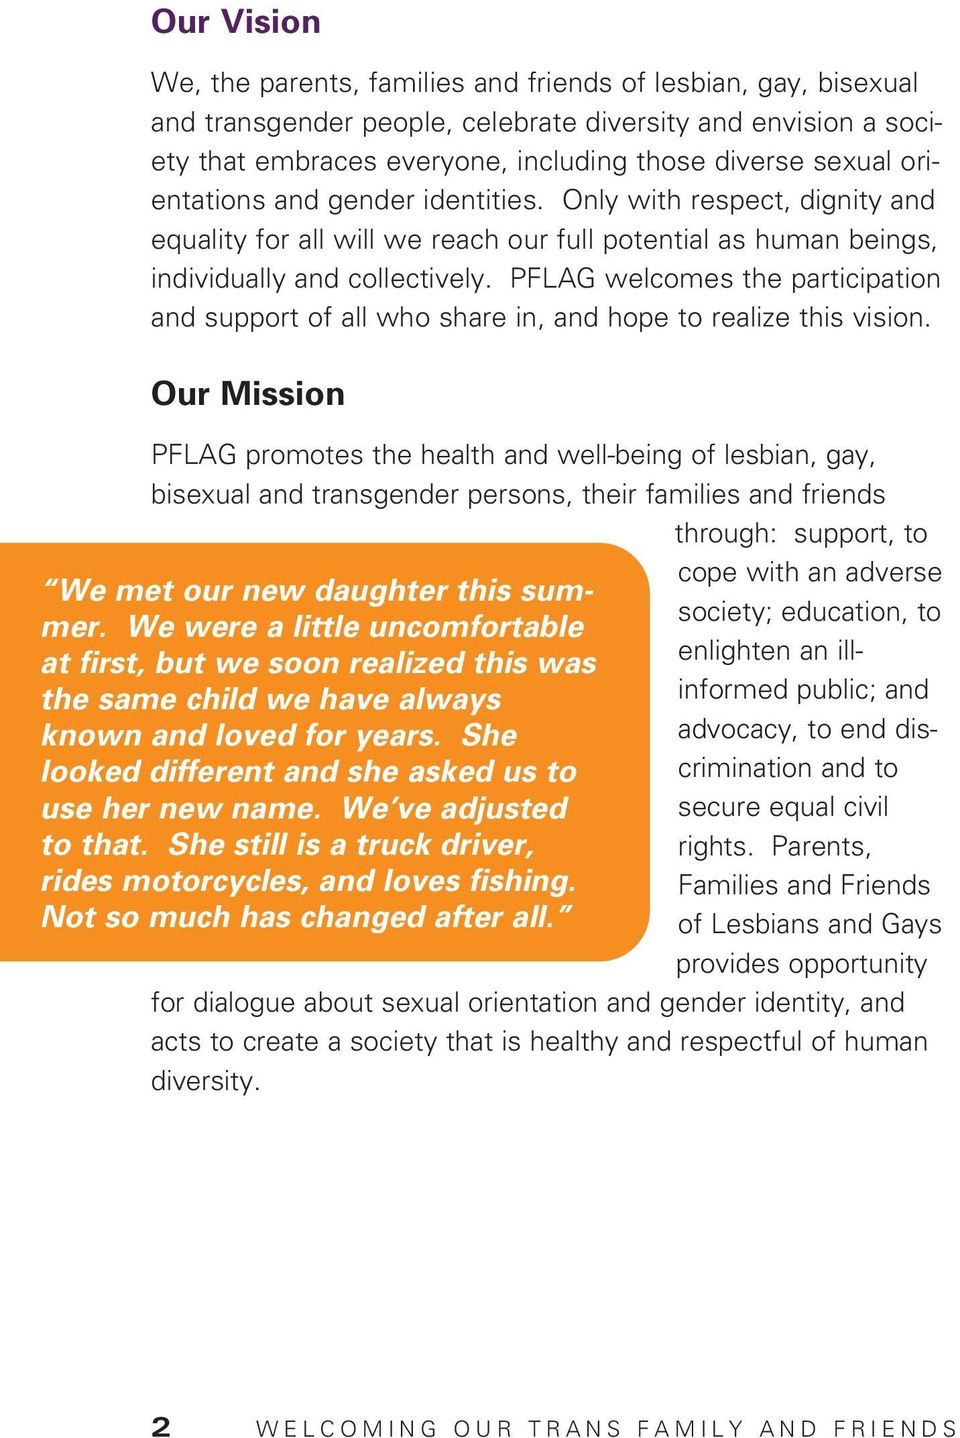 PFLAG welcomes the participation and support of all who share in, and hope to realize this vision.